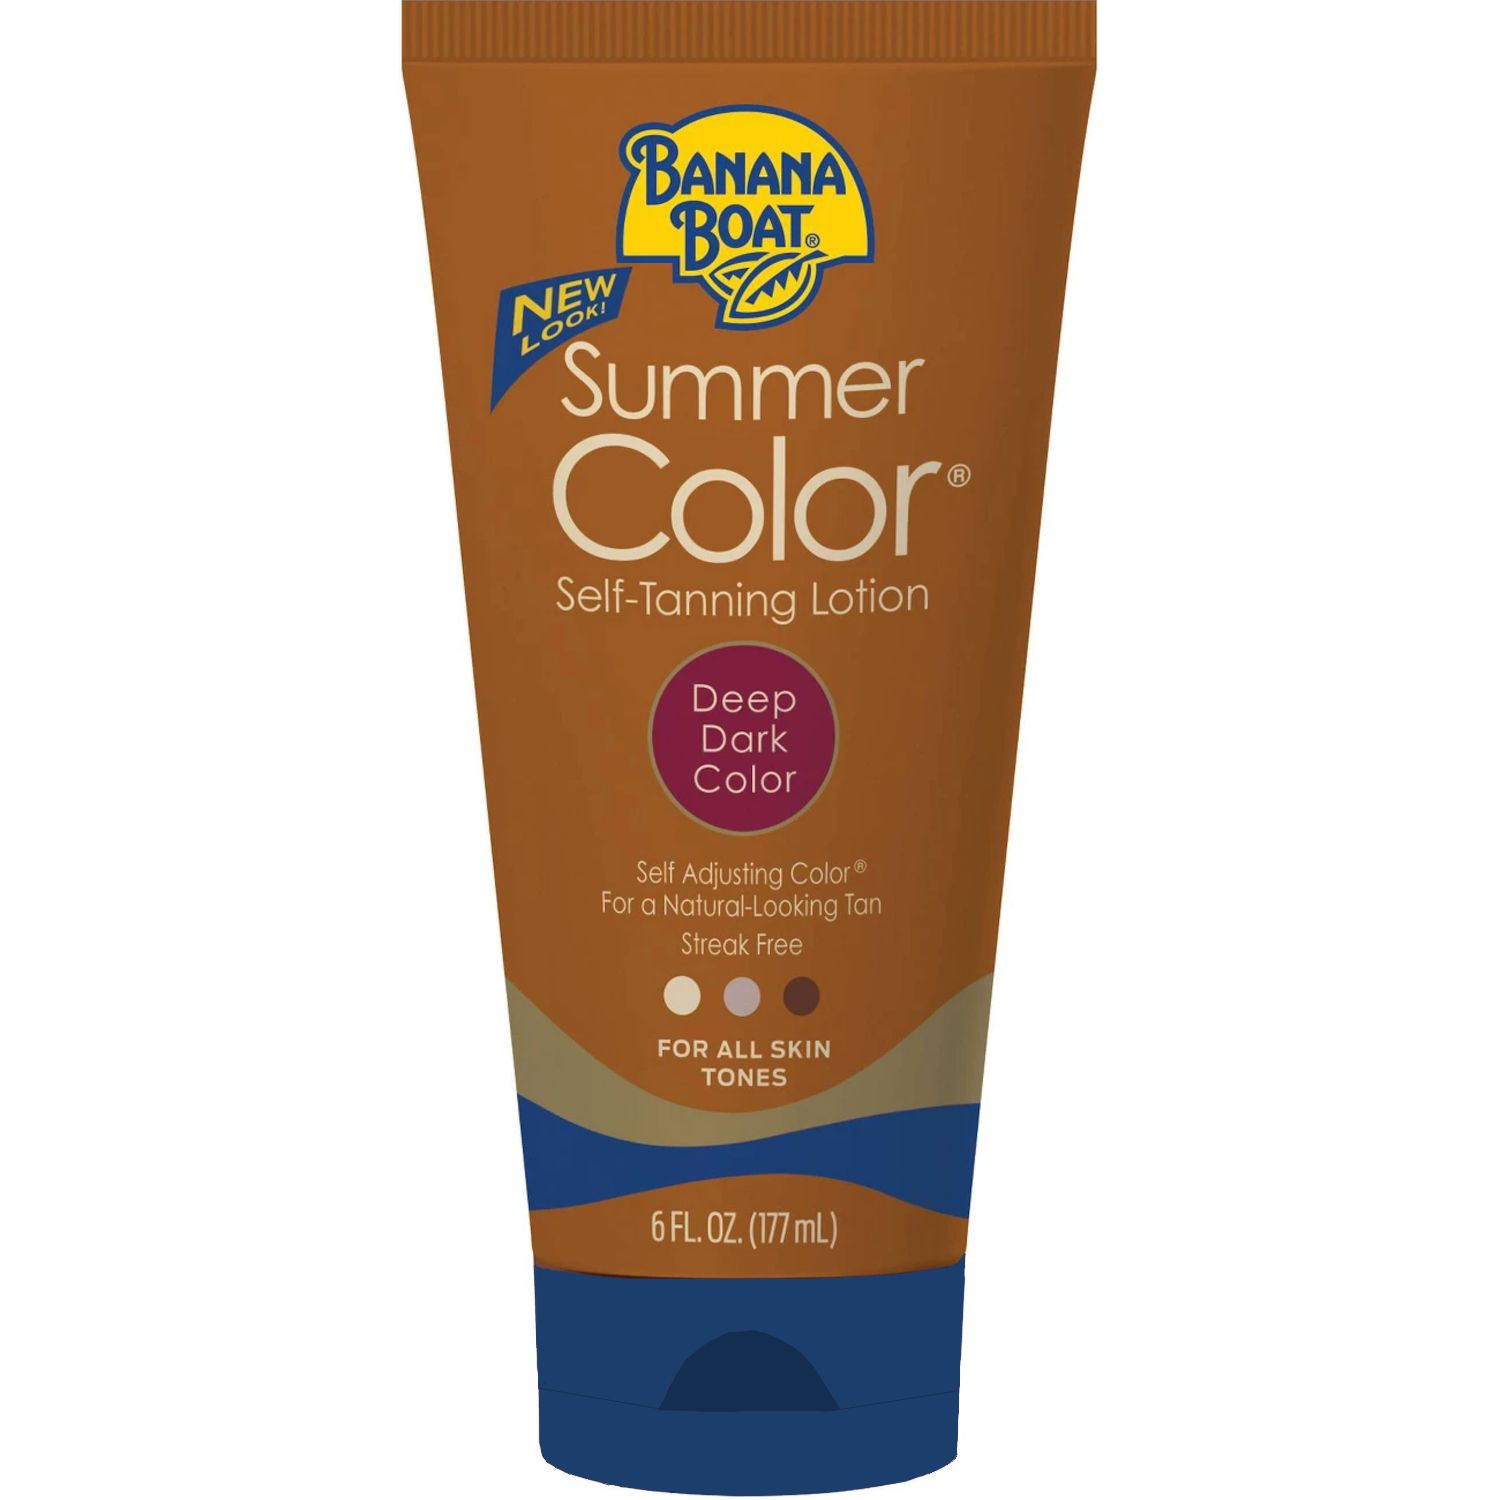 The Deep Skin-Friendly Pick Banana Boat Self Tanning Sunless Lotion Banana Boat walmart.com $6.67 SHOP NOW Here's another tanner that works for deeper skin tones. Bonus: The drugstore, under $10 price tag lets you stock up on multiple bottles.